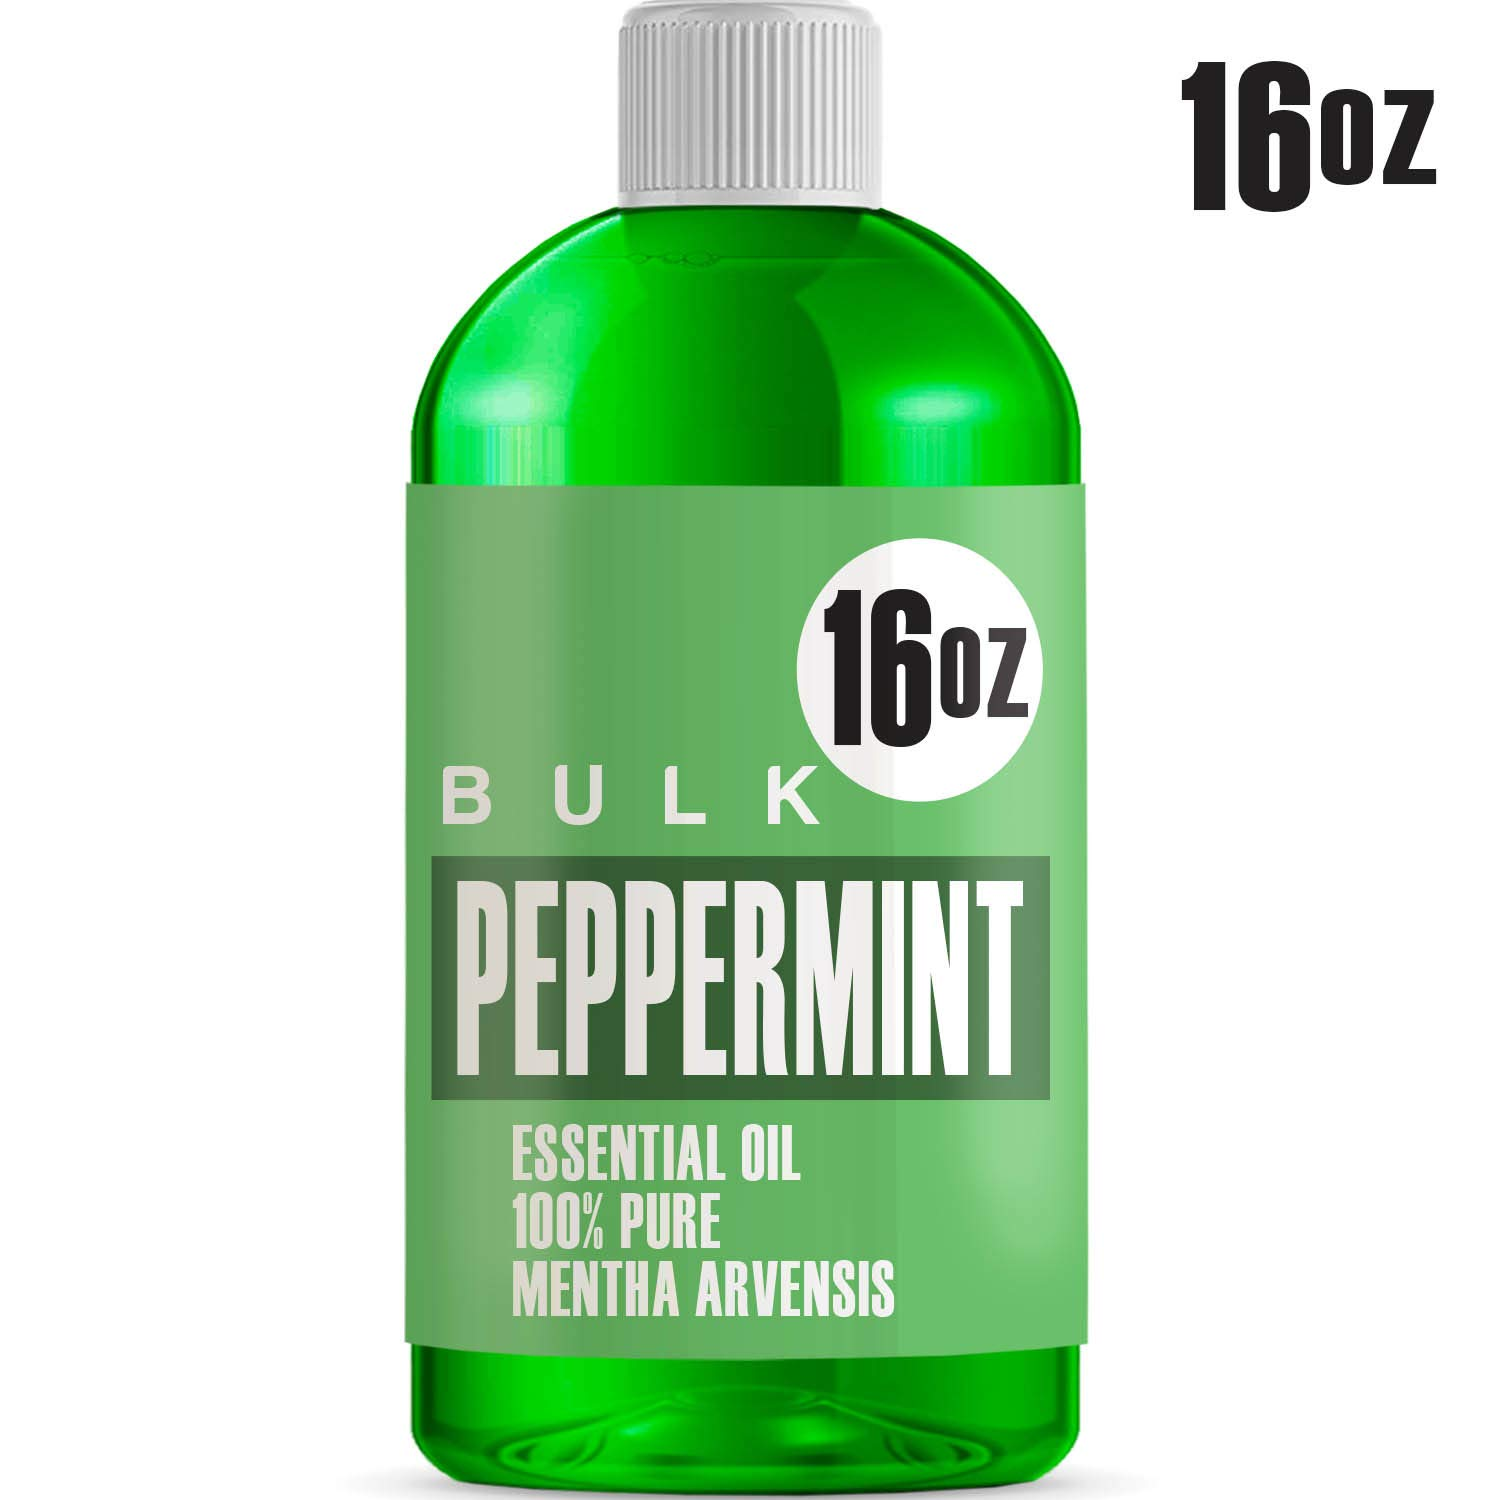 16oz Bulk Peppermint Essential Oil (GIANT 16 OUNCE BOTTLE - THERAPEUTIC GRADE PEPPERMINT OIL) Perfect For Aromatherapy Diffusers, Help Repel Mice & Rats, Candle Making, Soap Making, Lotions, Body Wash by Lab Bulks Essential Oil